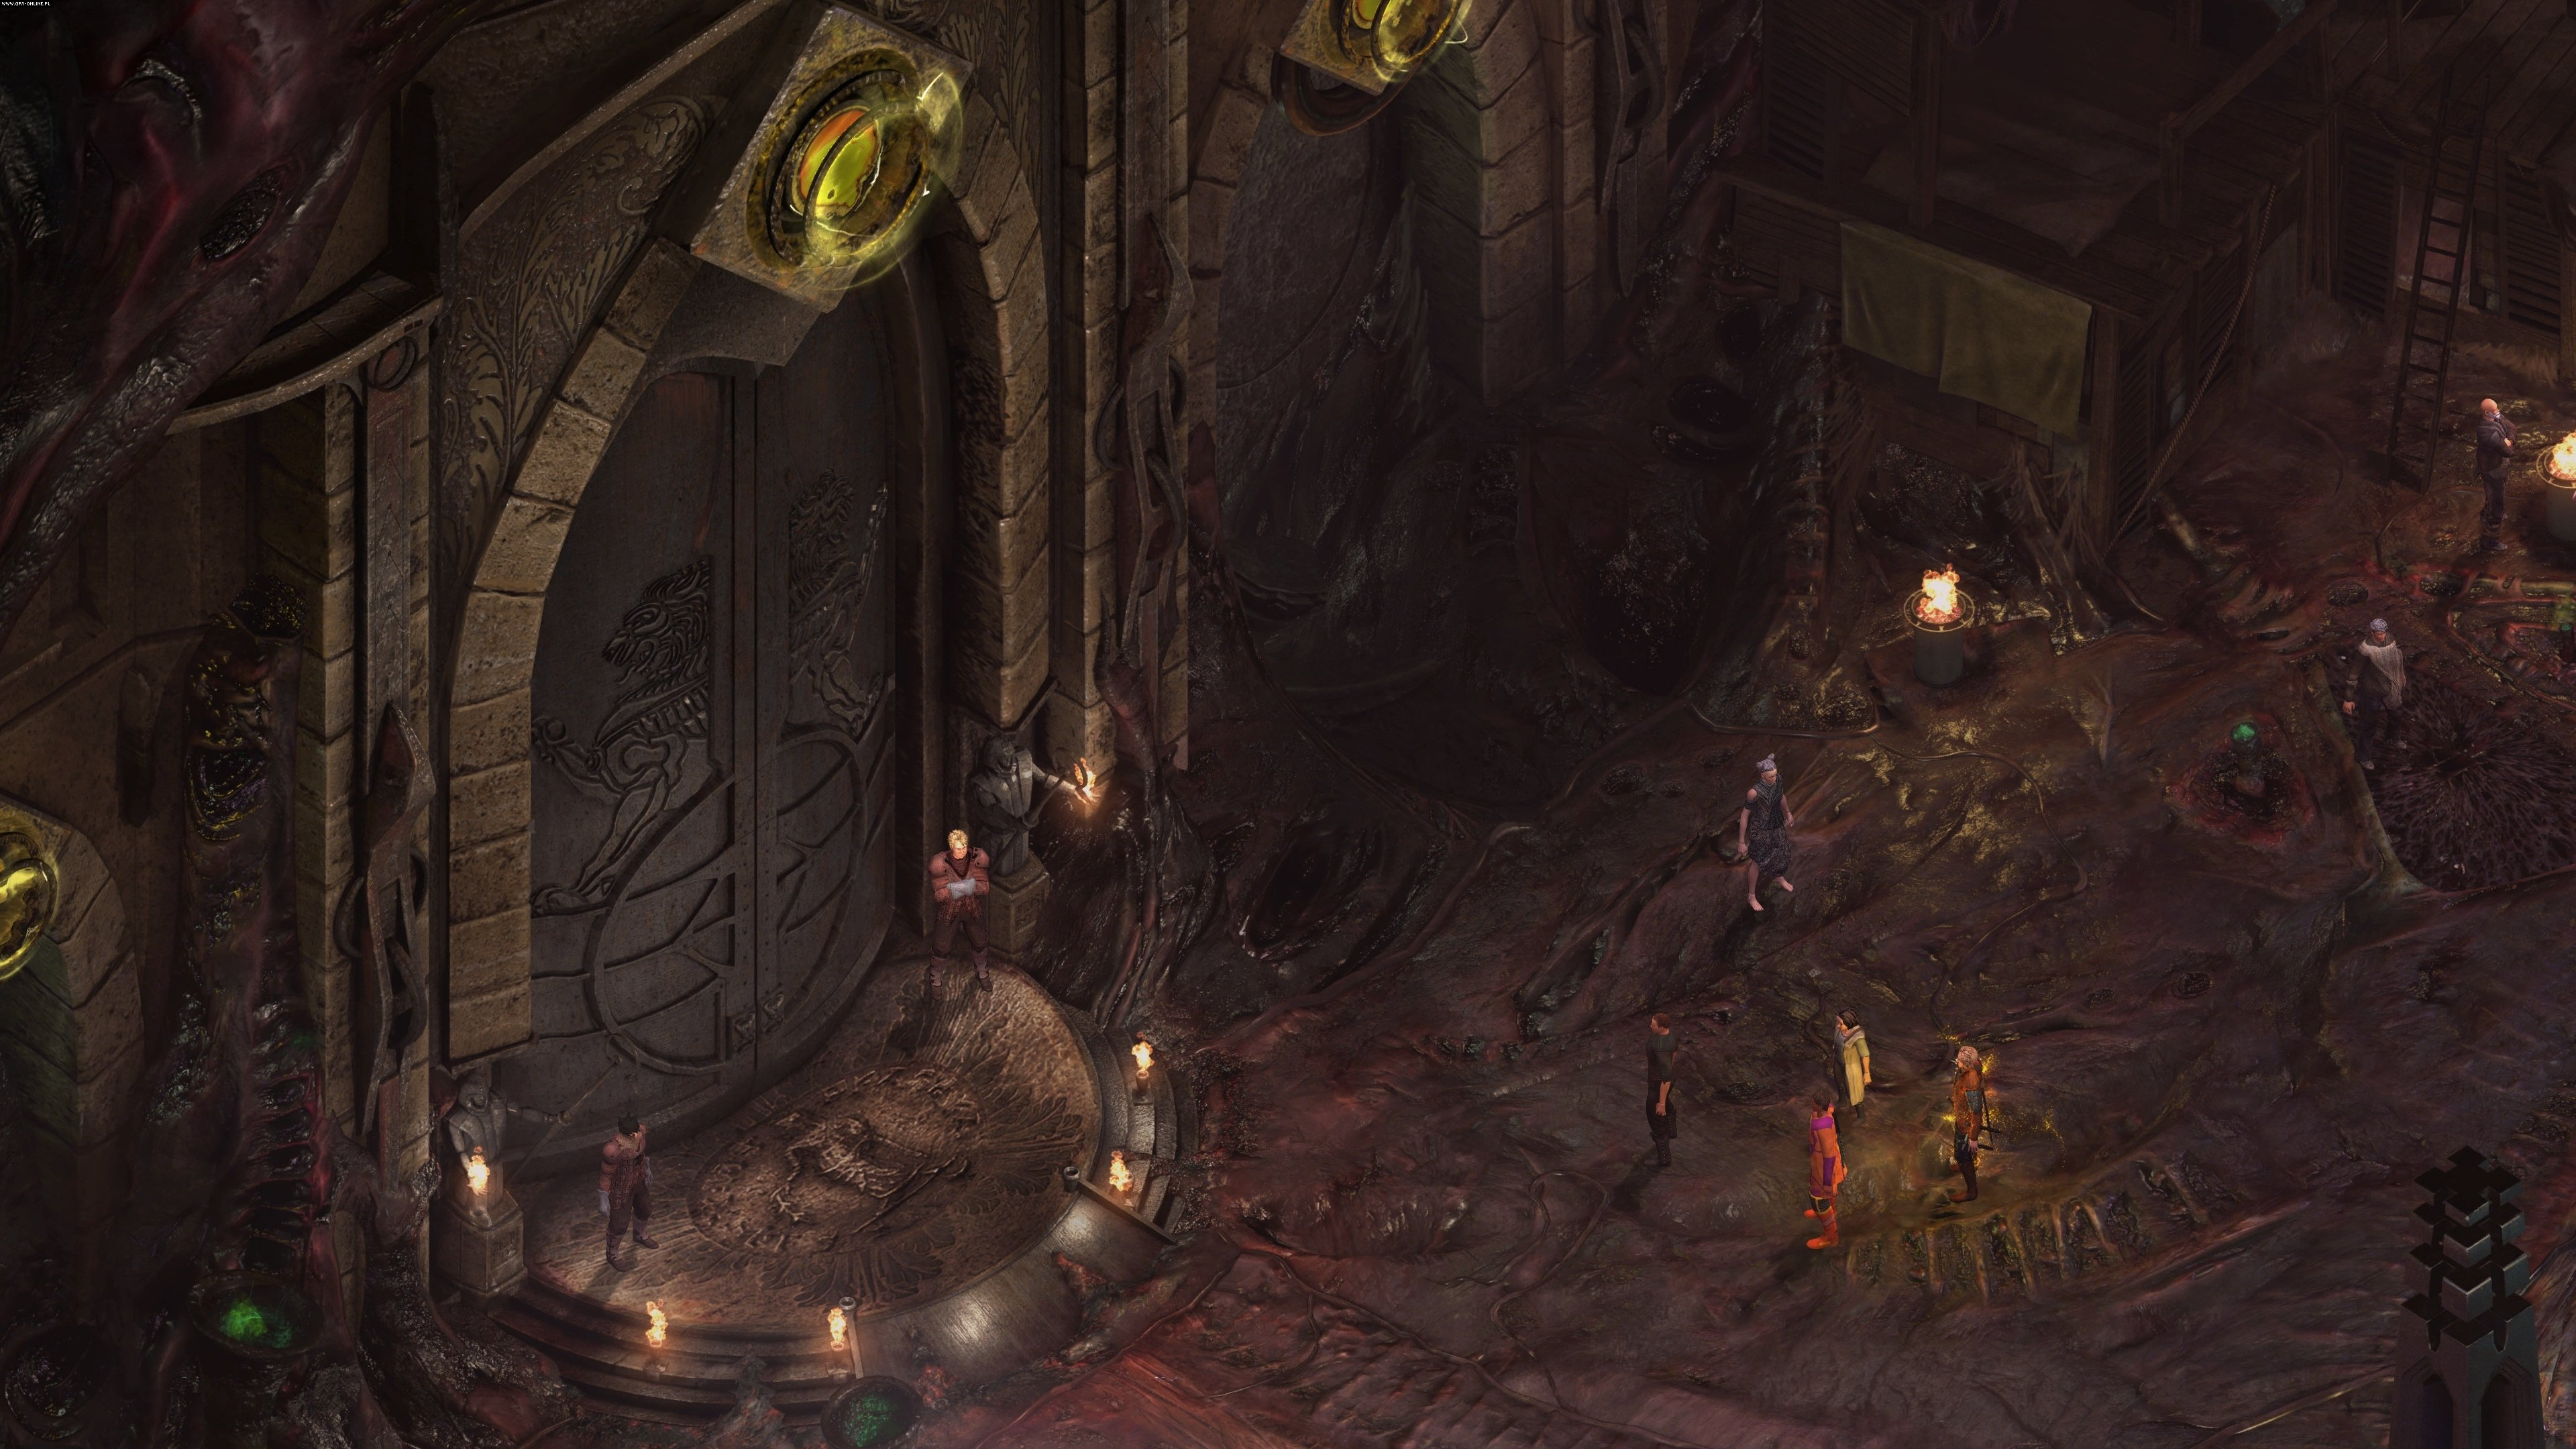 Torment: Tides of Numenera PC, PS4, XONE Games Image 4/28, inXile entertainment, Techland